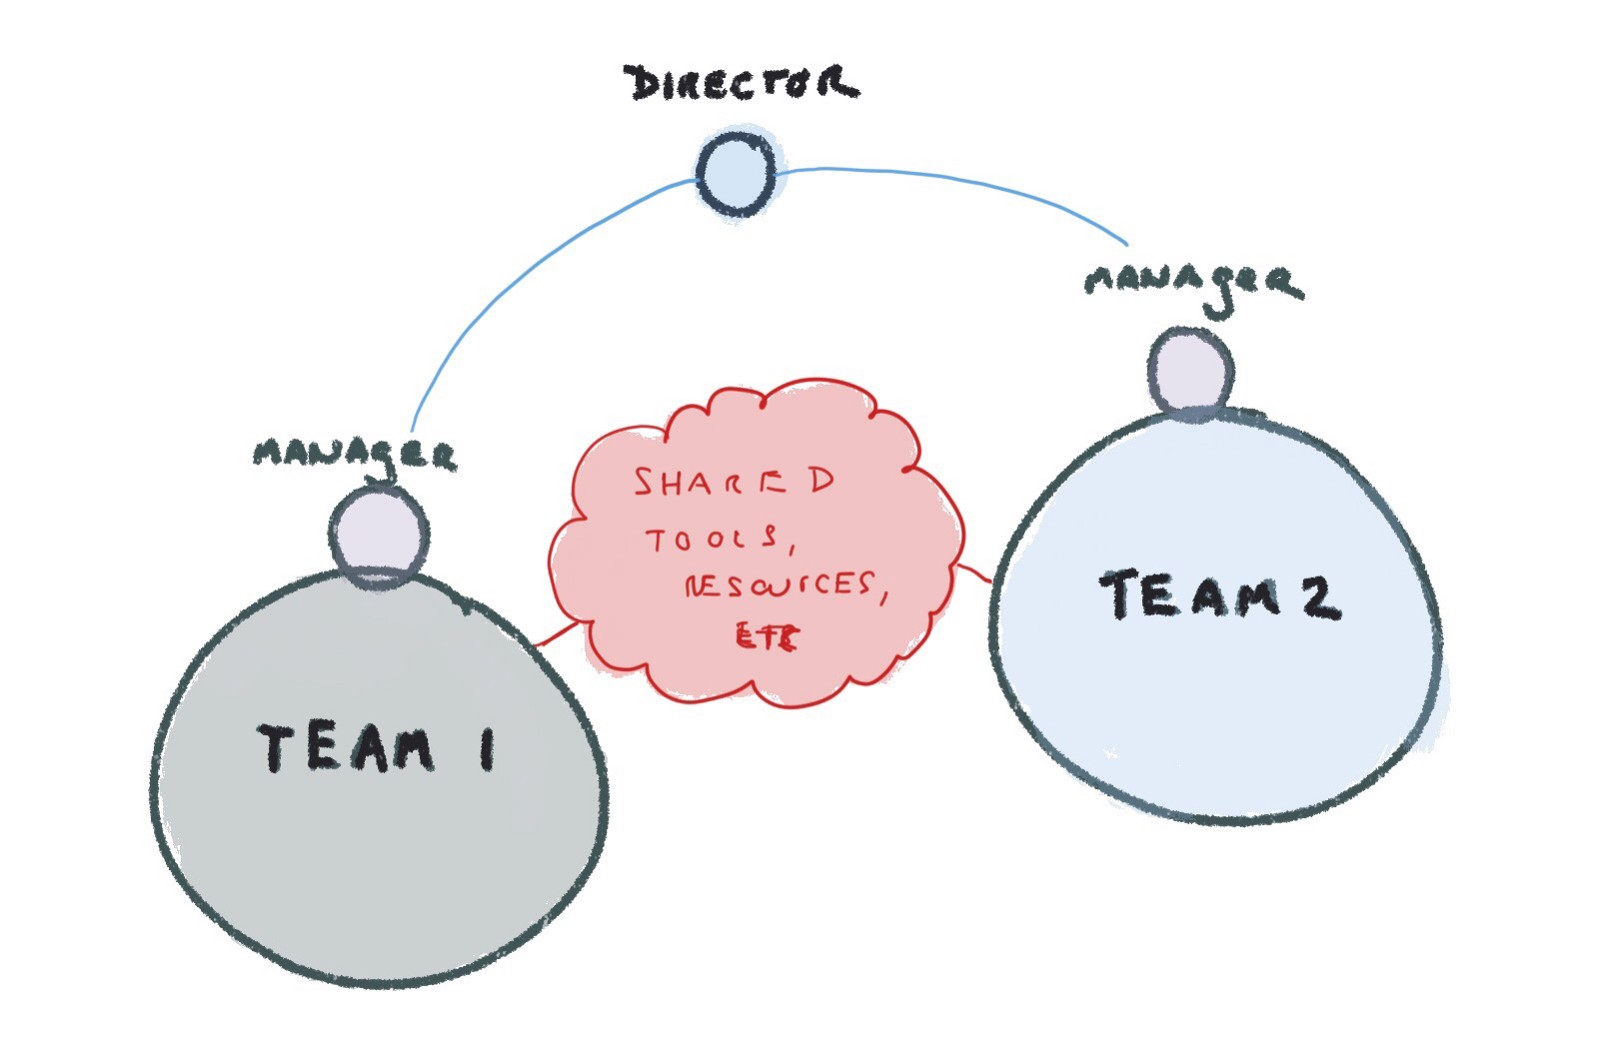 how does your company approach continuous improvement